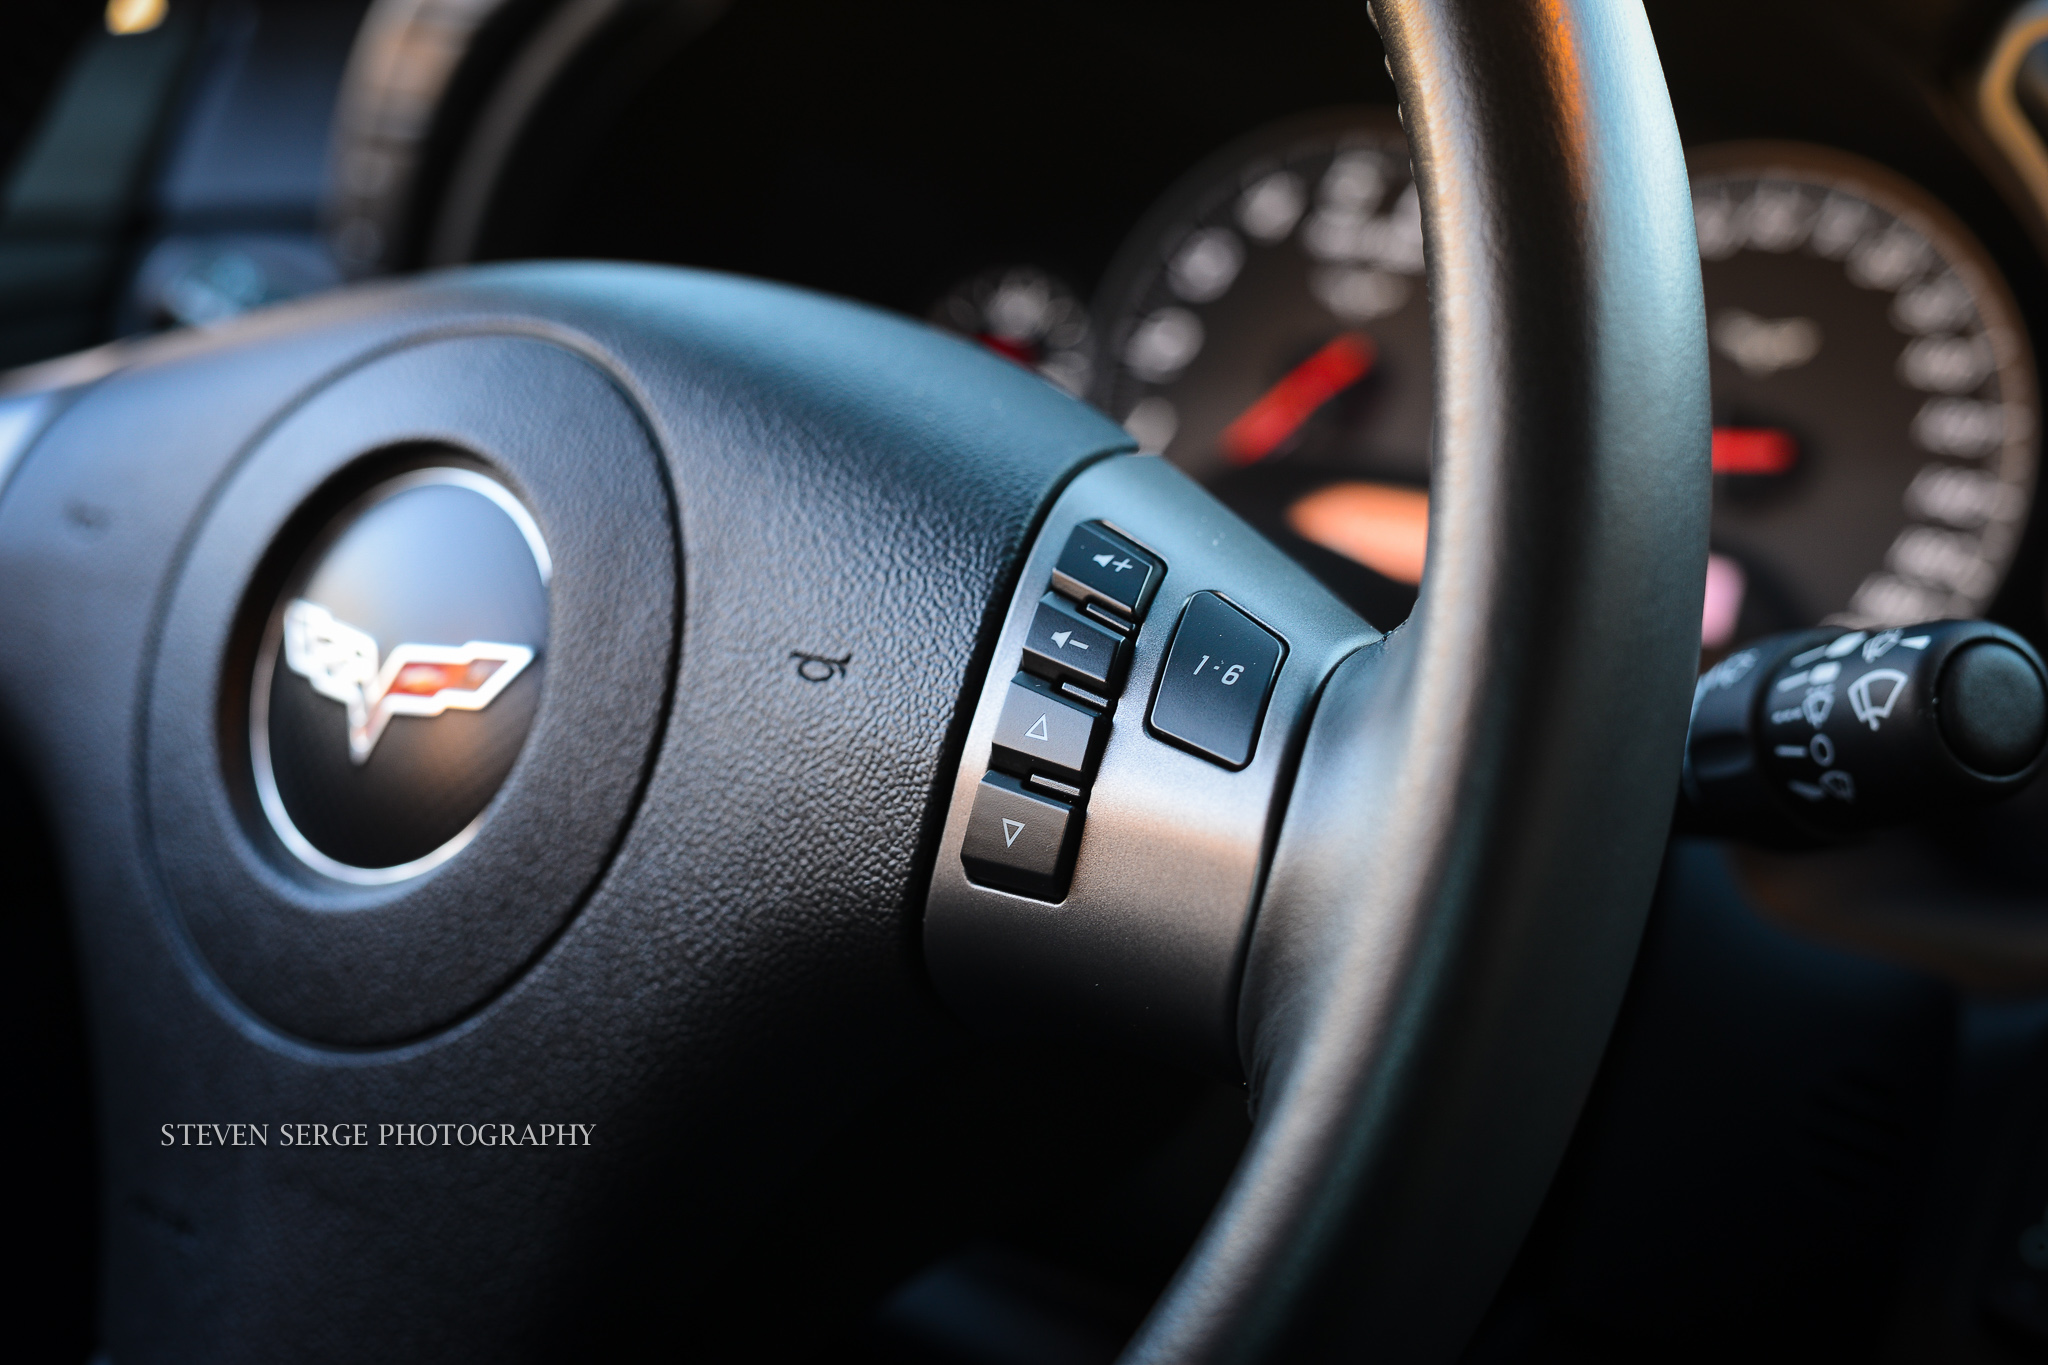 Corvette-Commercial-Photography-Ebay-Craigslist-Scranton-NEPA-Photographer-business-4.jpg